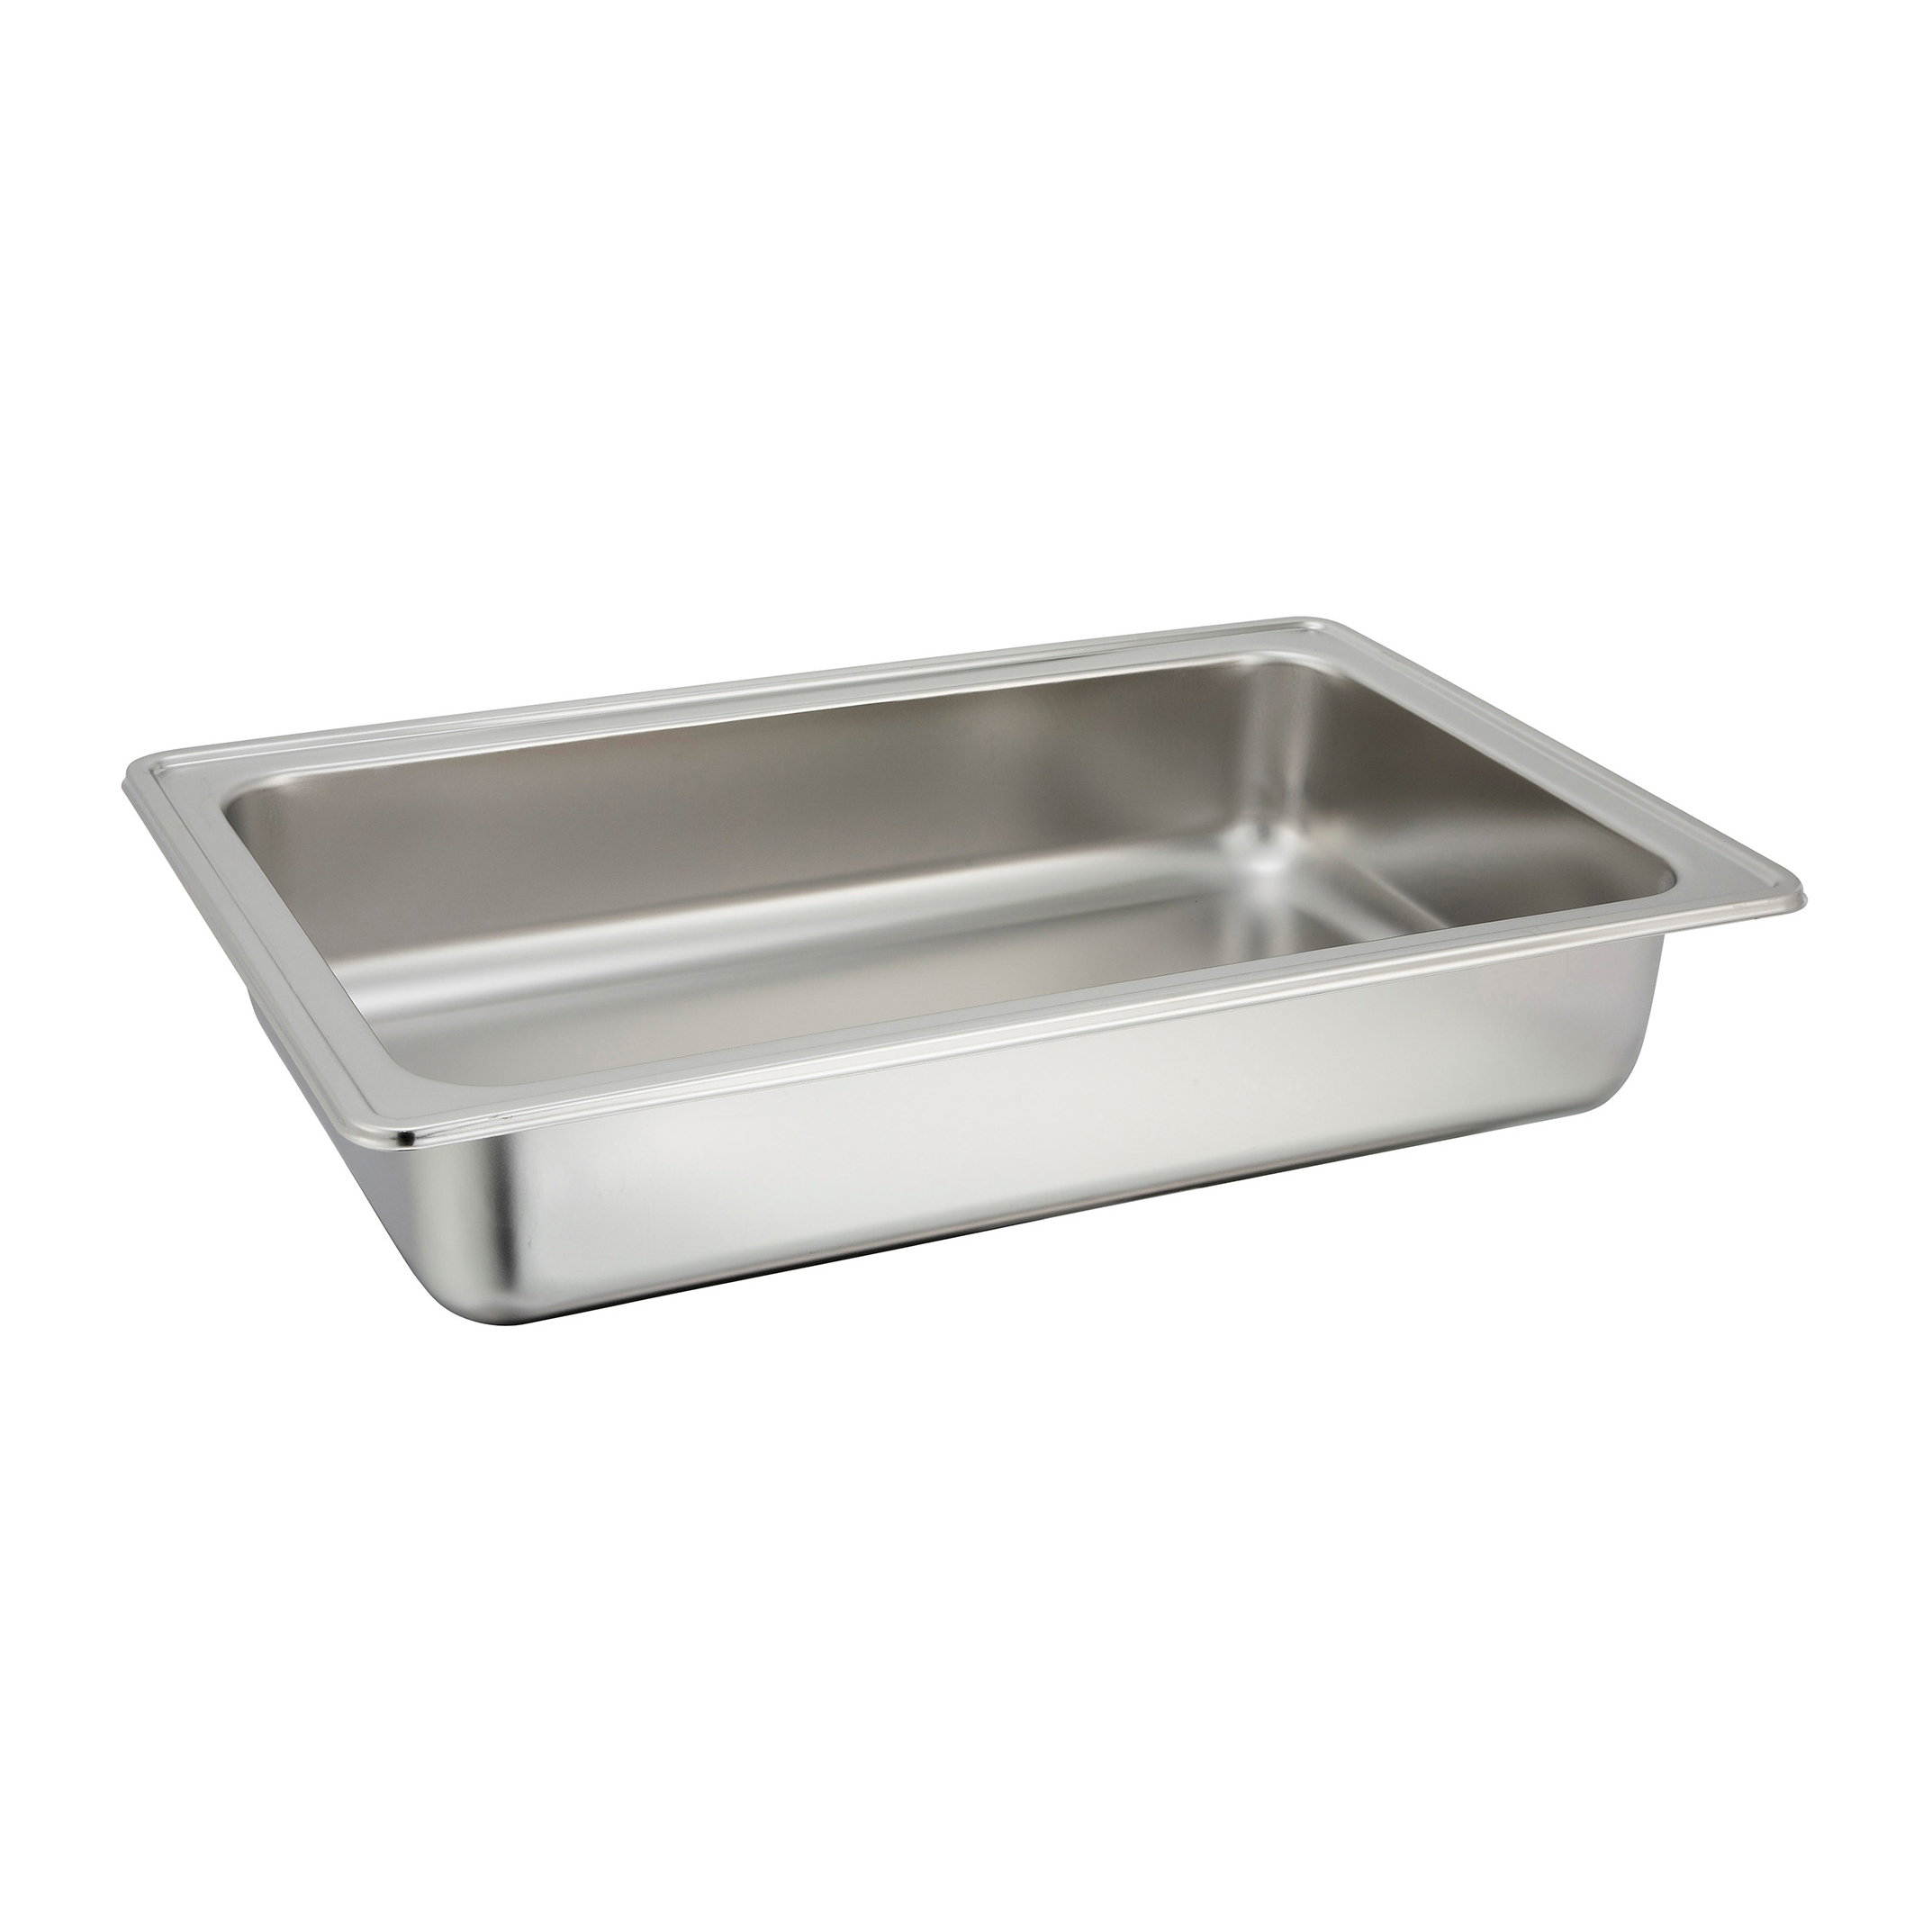 Winco 601-WP1 chafing dish pan